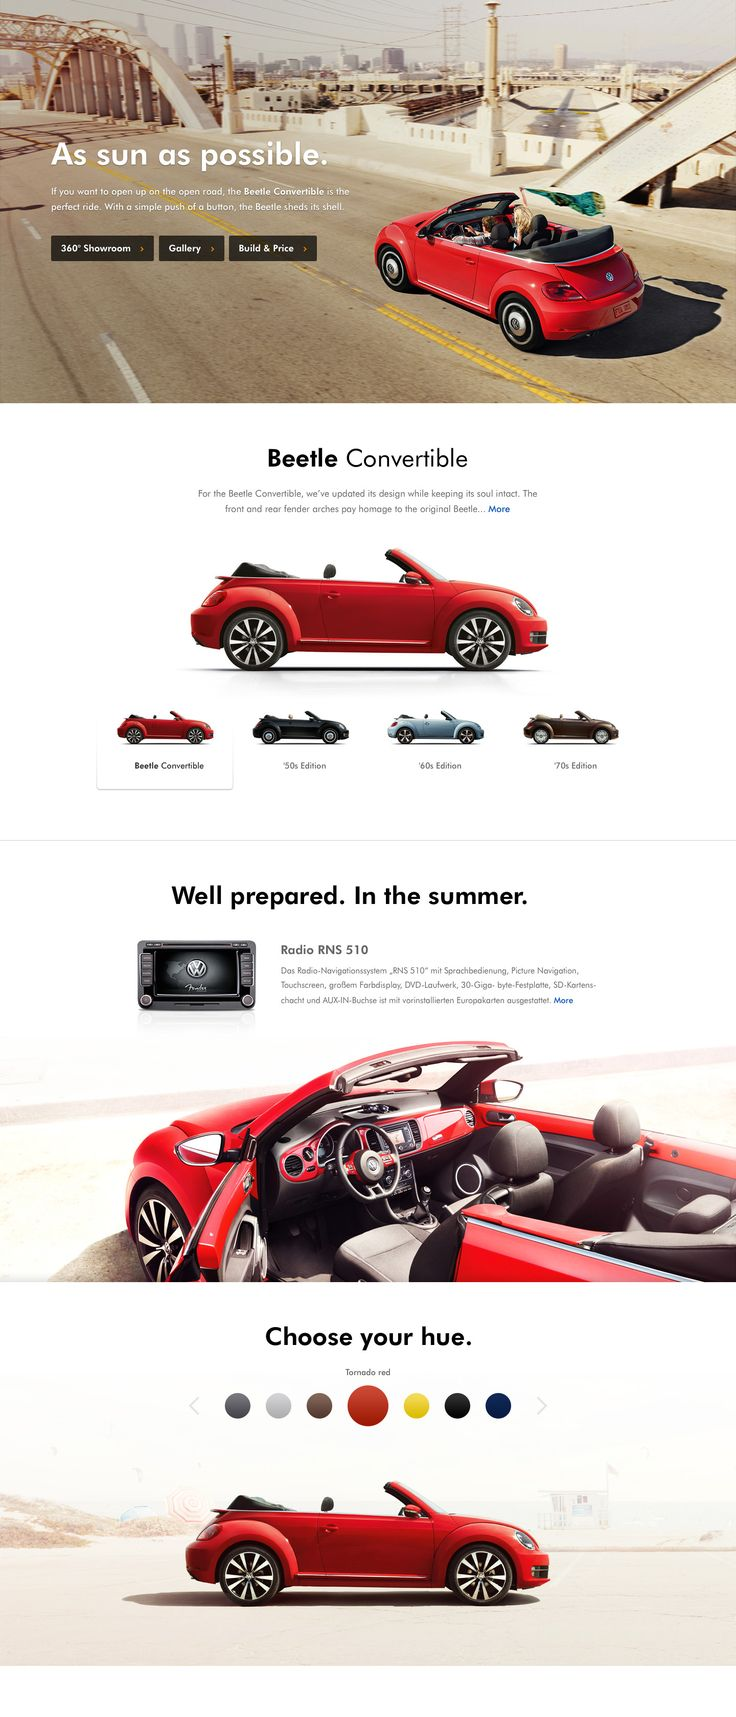 VW Redesign - Product detail sneak peak #redesign